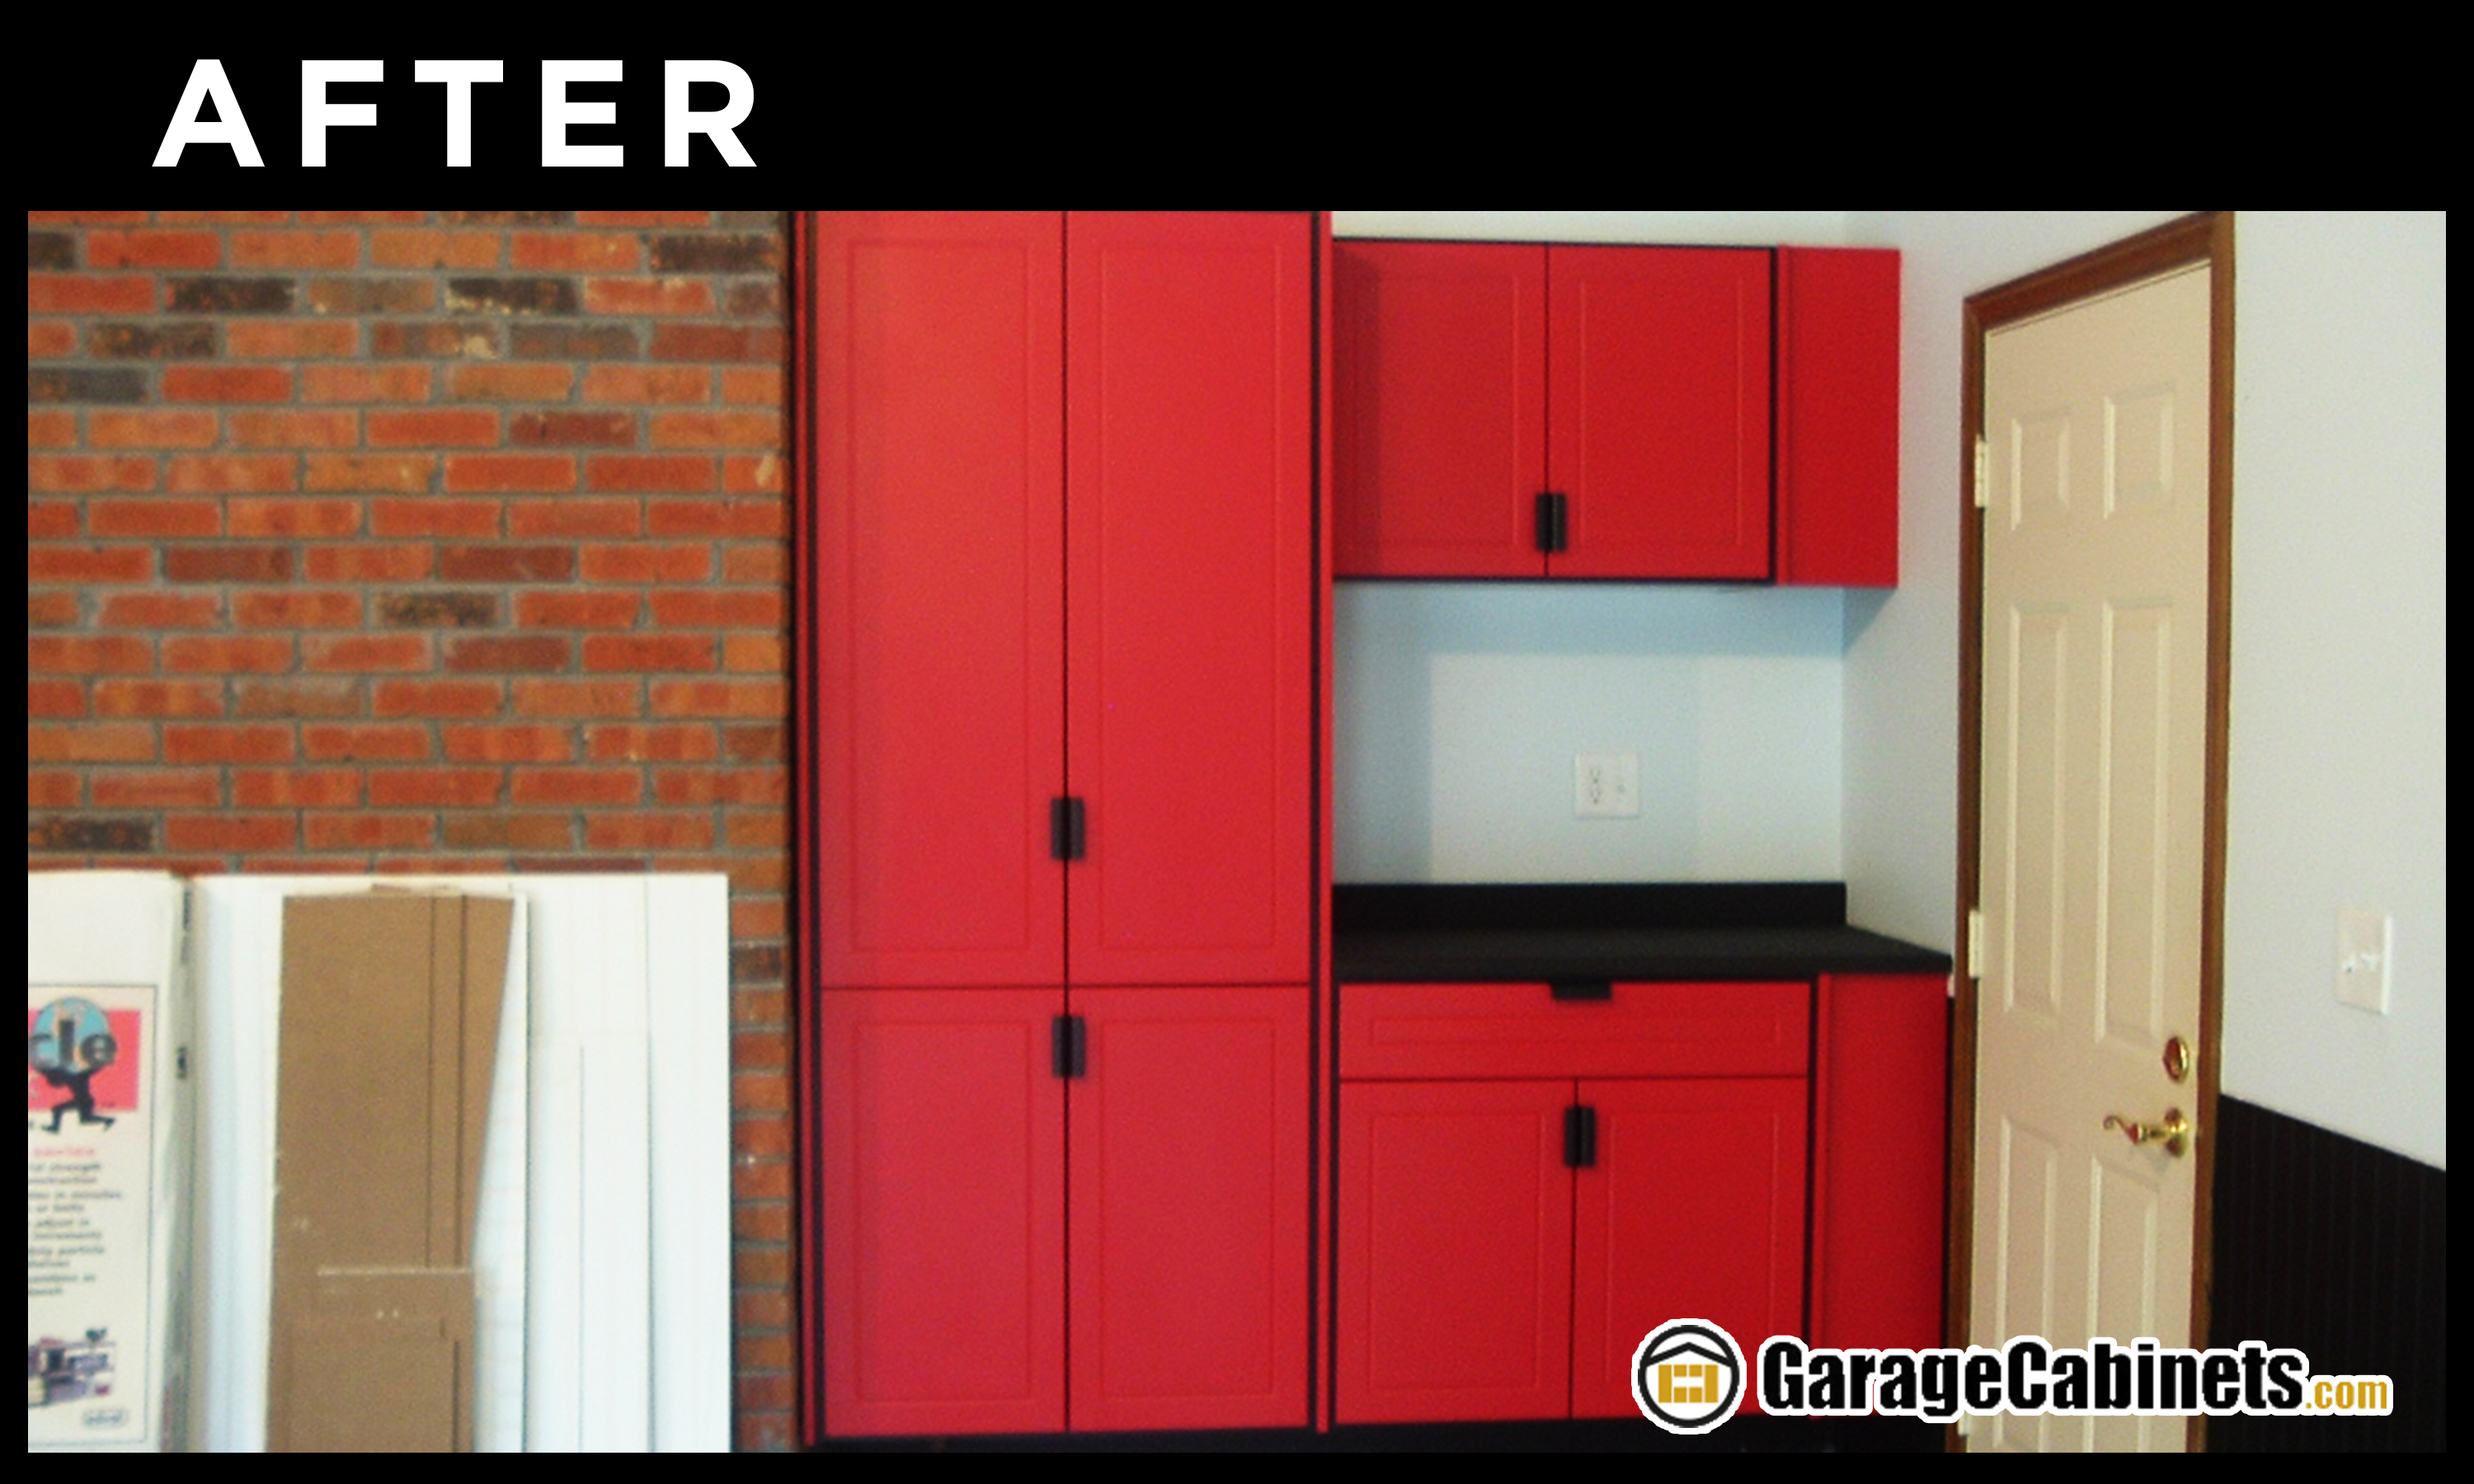 Total organization in this new garage makeover after photo.